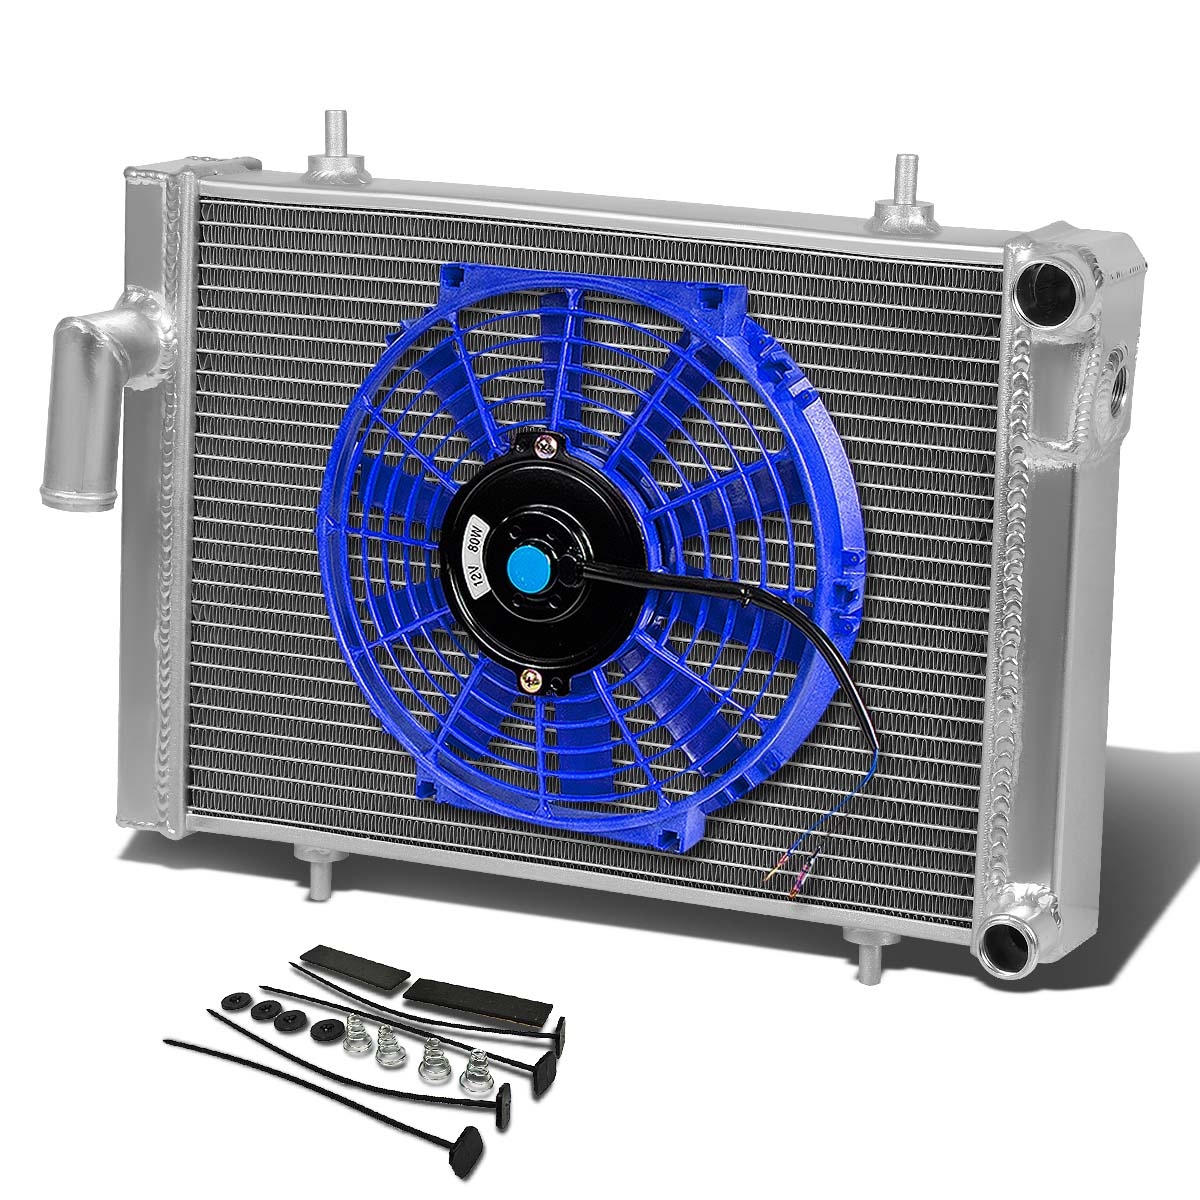 79 80 Triumph Spitfire 1500 Mt Aluminum Racing 3 Row Radiator 10 Main Body Wiring Harness Fan Blue Mounting Kit